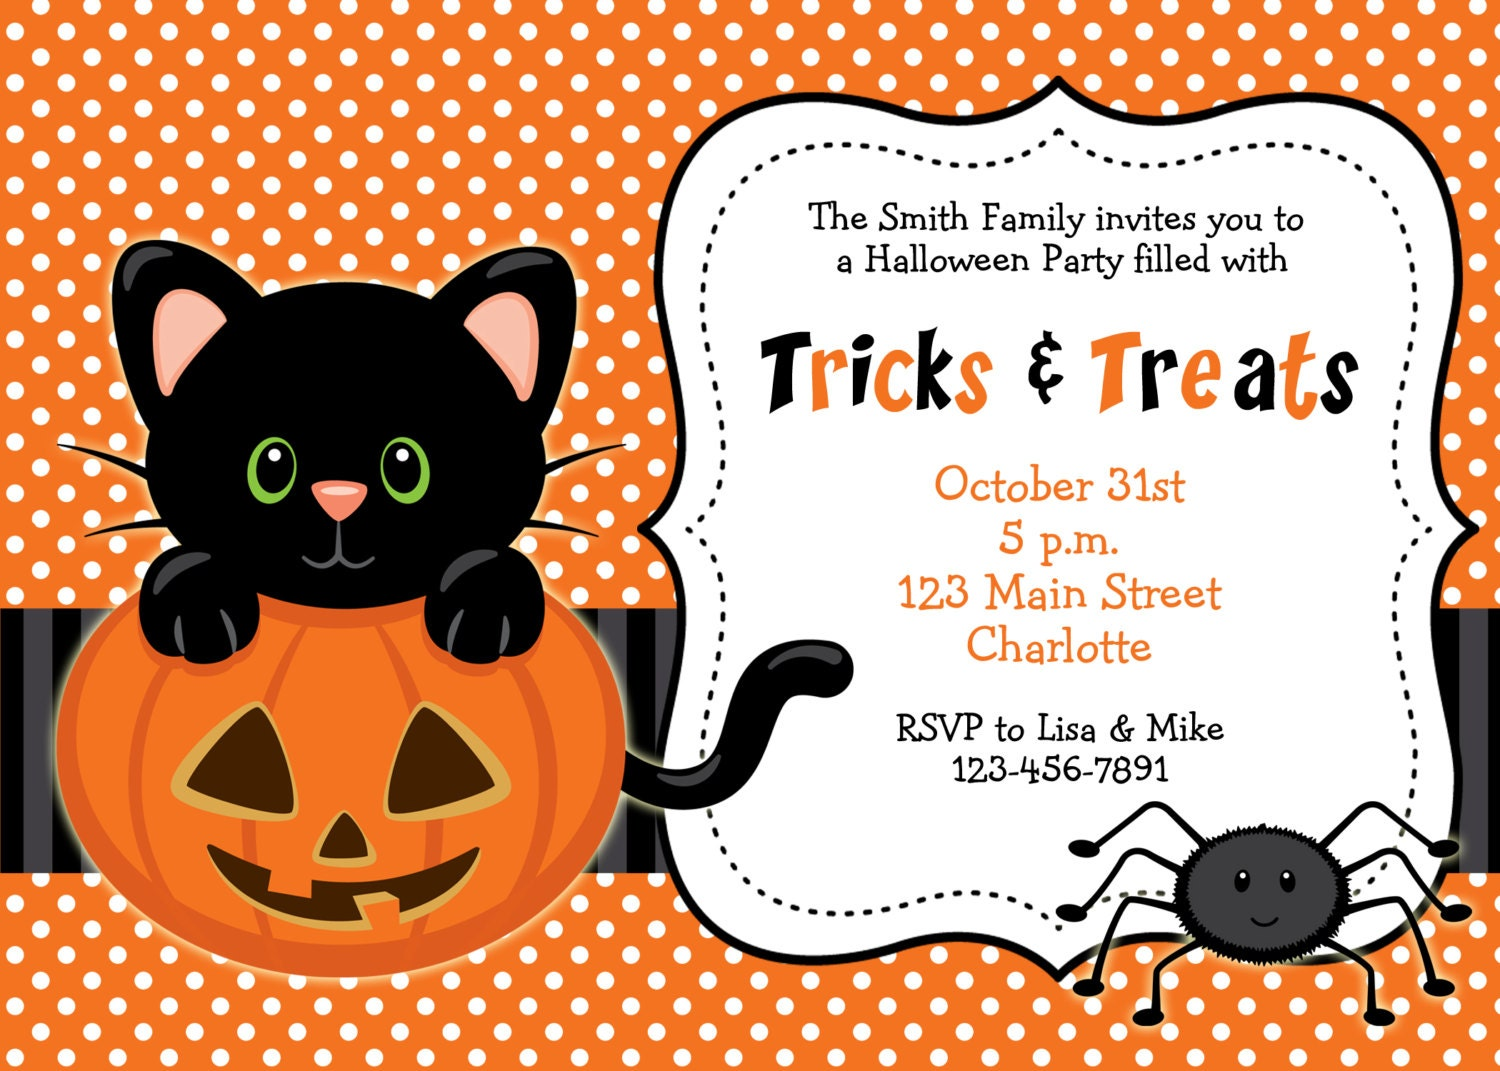 Halloween Potluck Invitation Wording as great invitation layout